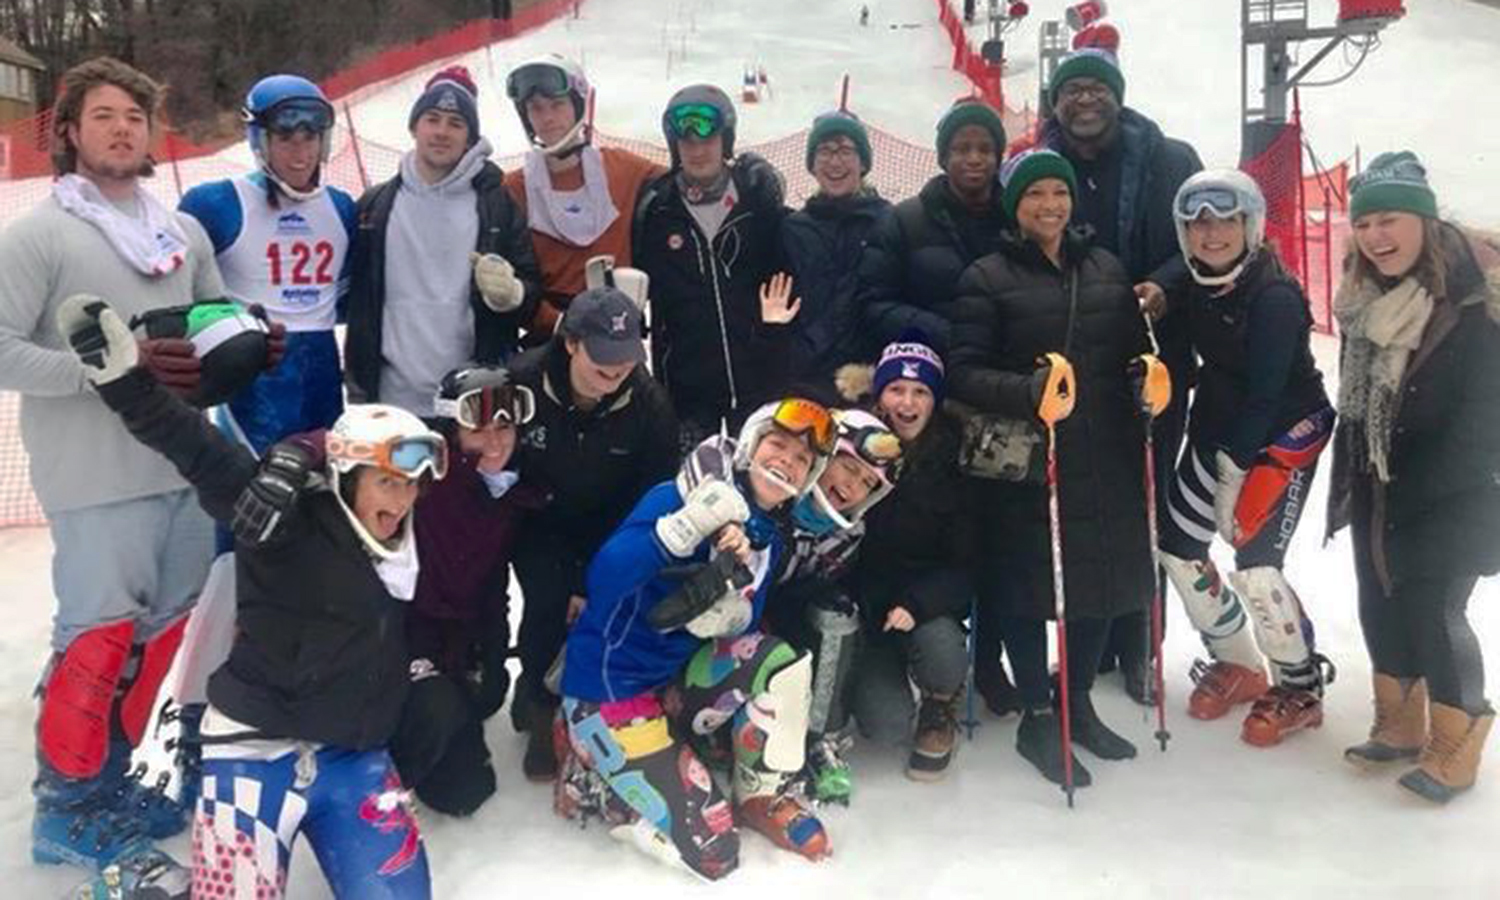 Members of the HWS Alpine Ski Team pose for a photo with President Gregory J. Vincent '83 and his son Cameron at Bristol Mountain.